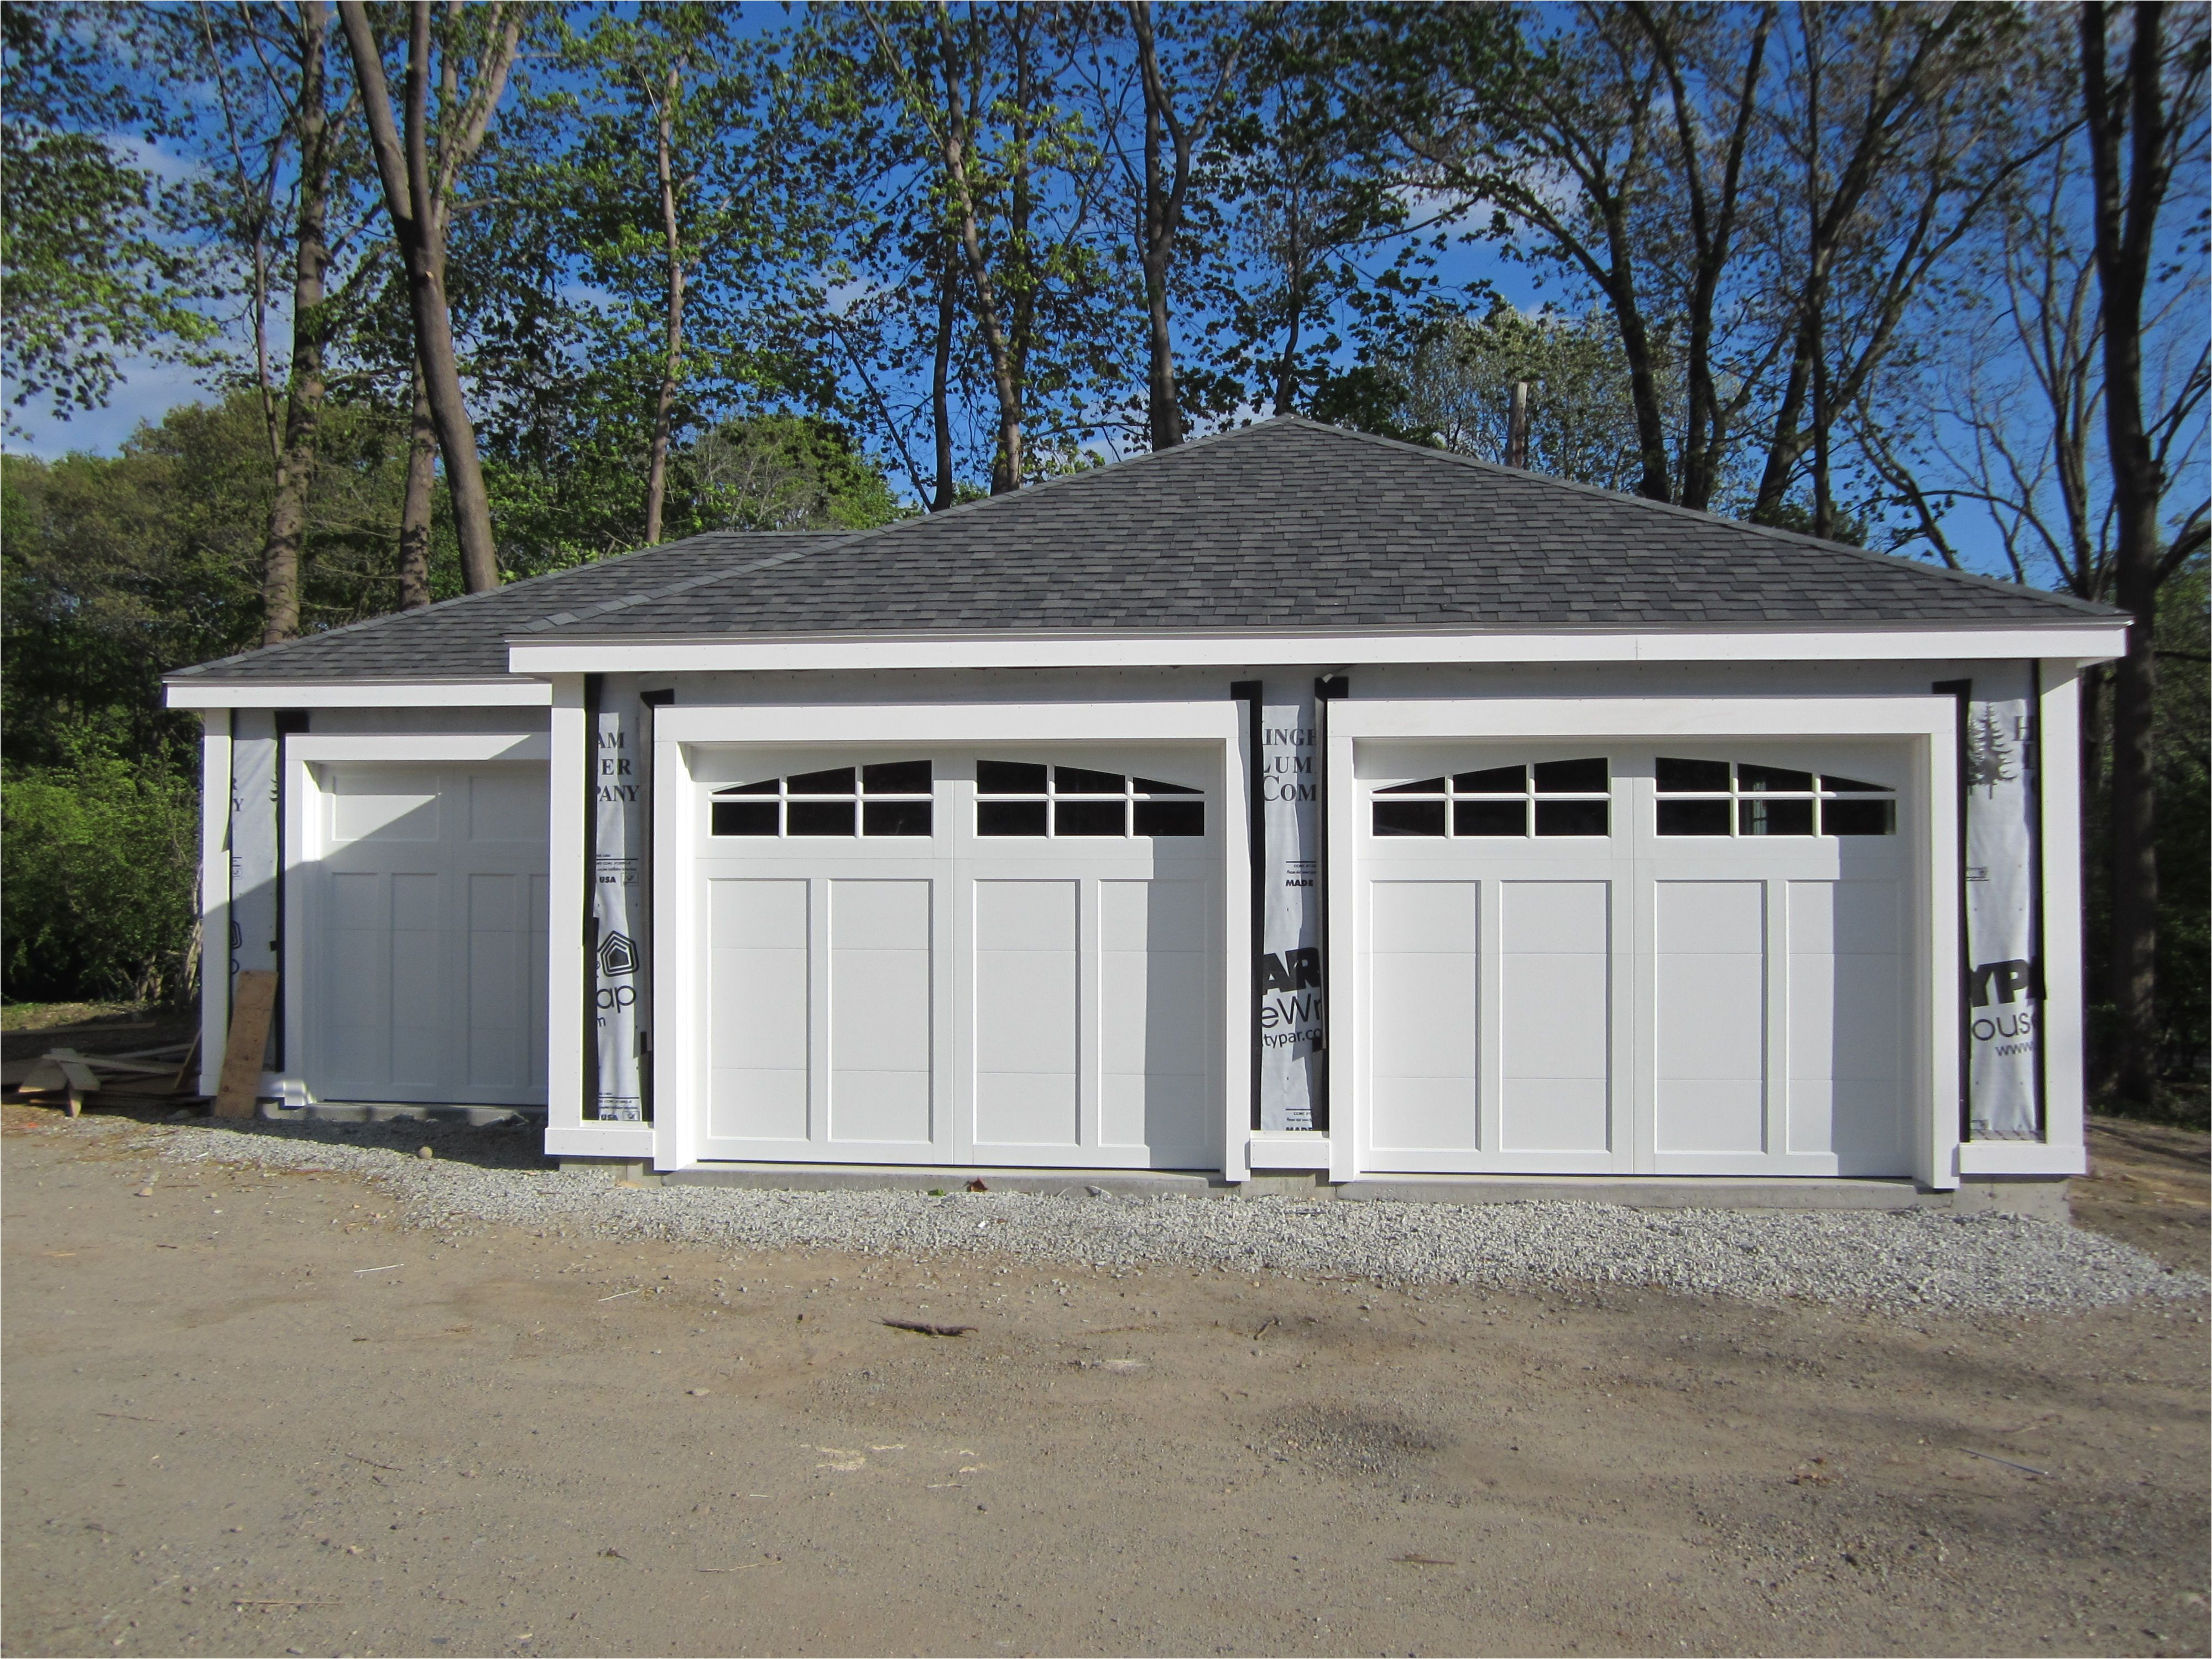 haas american tradition model 921 steel carriage house style garage doors in white with arch 6 pane glass installed by mortland overhead door